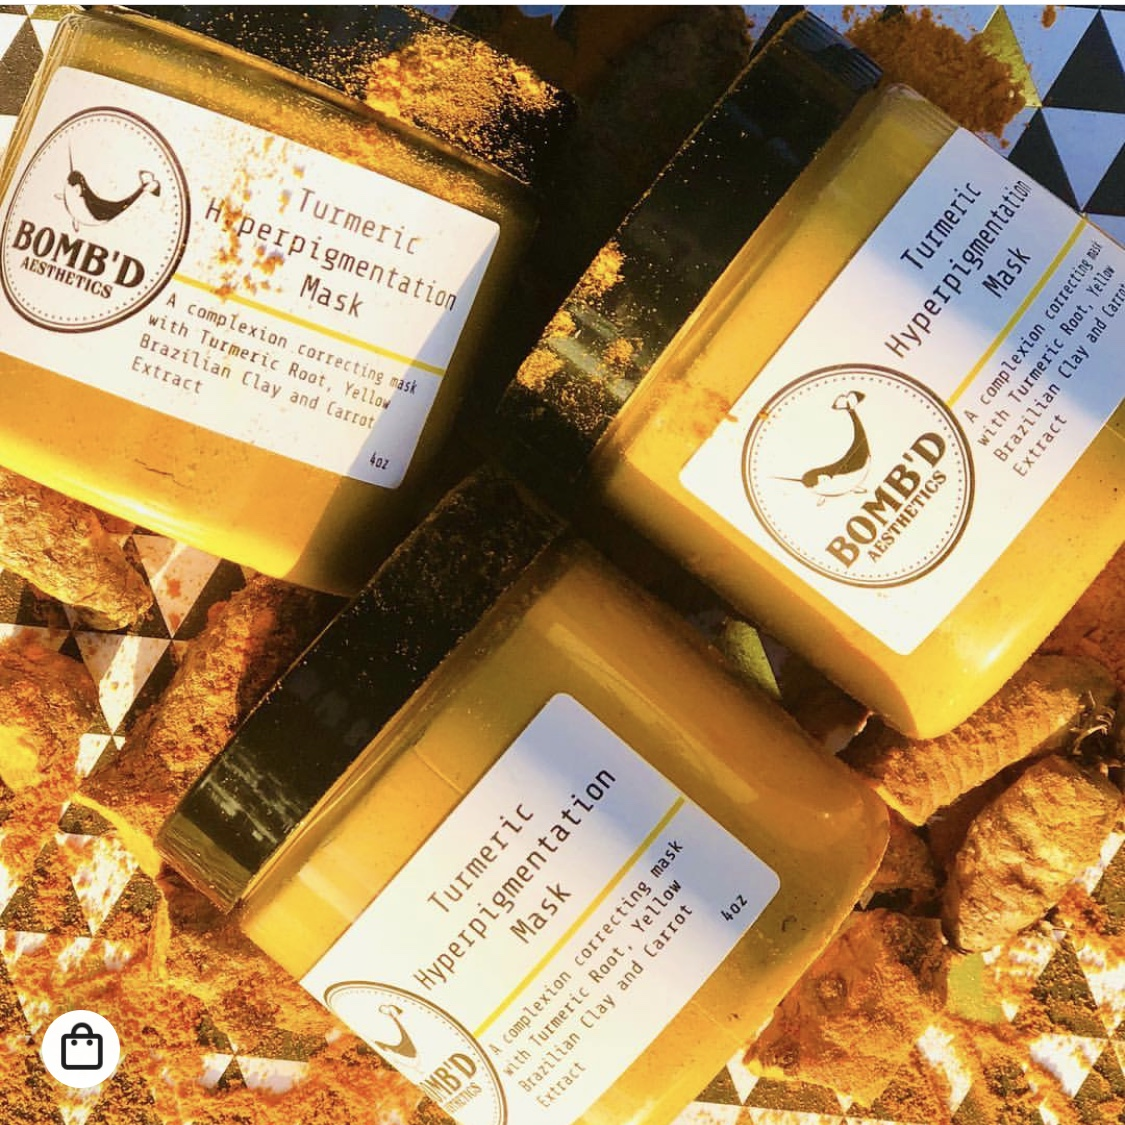 Bomb'd Aesthetics Tumeric Hyperpigmentation Mask     https://www.lovebombd.com/collections/all?page=2    I ordered this back in October so I think they are not making it anymore. I would reach out to confirm. It was $15